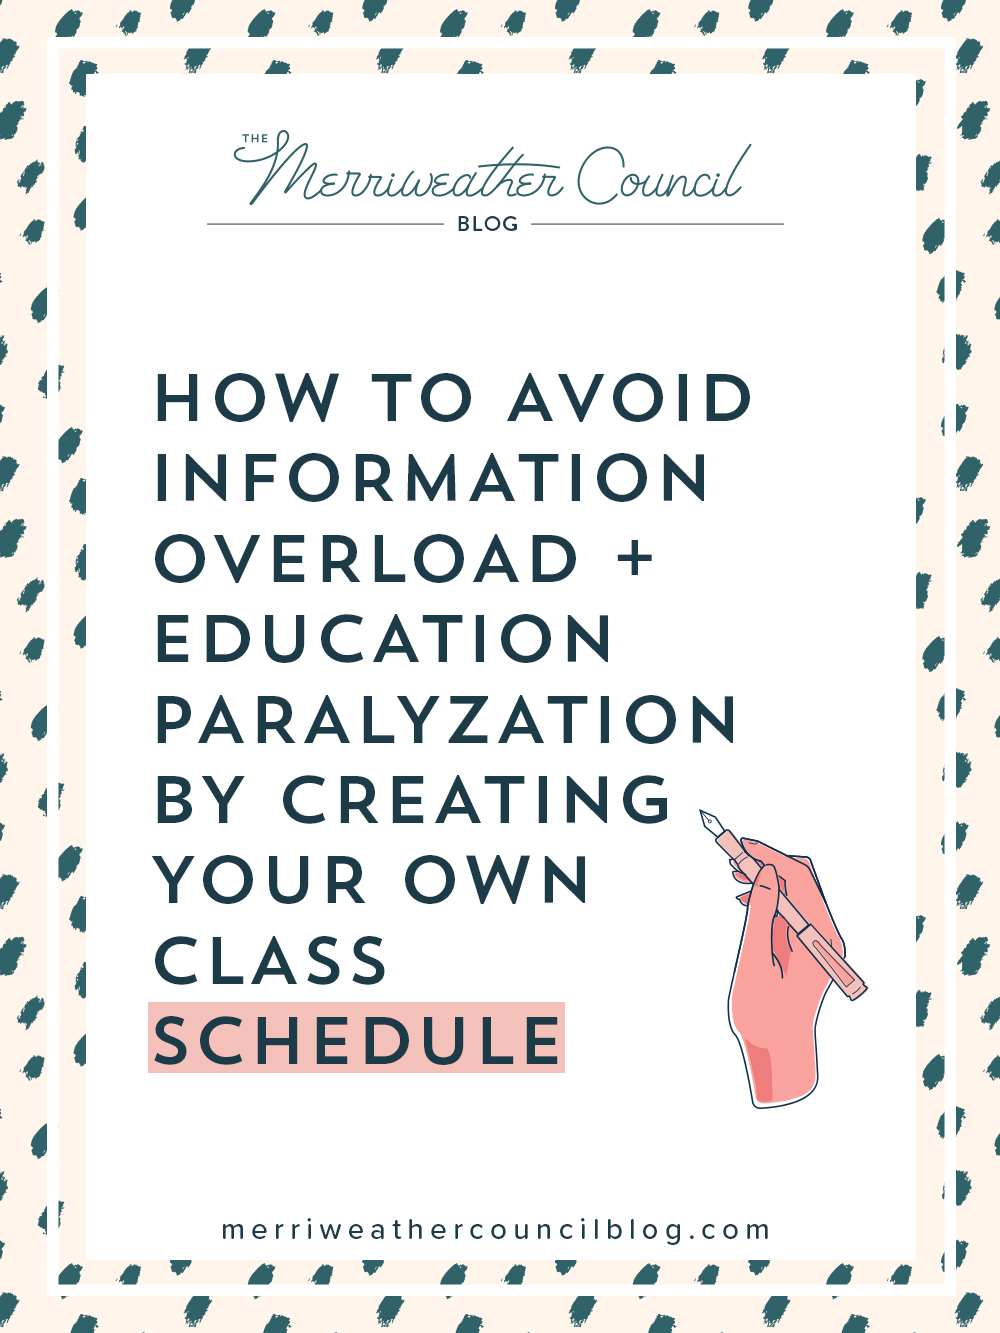 How to Avoid Information Overload + Education Paralyzation by Creating Your Own Class Schedule | The Merriweather Council Blog